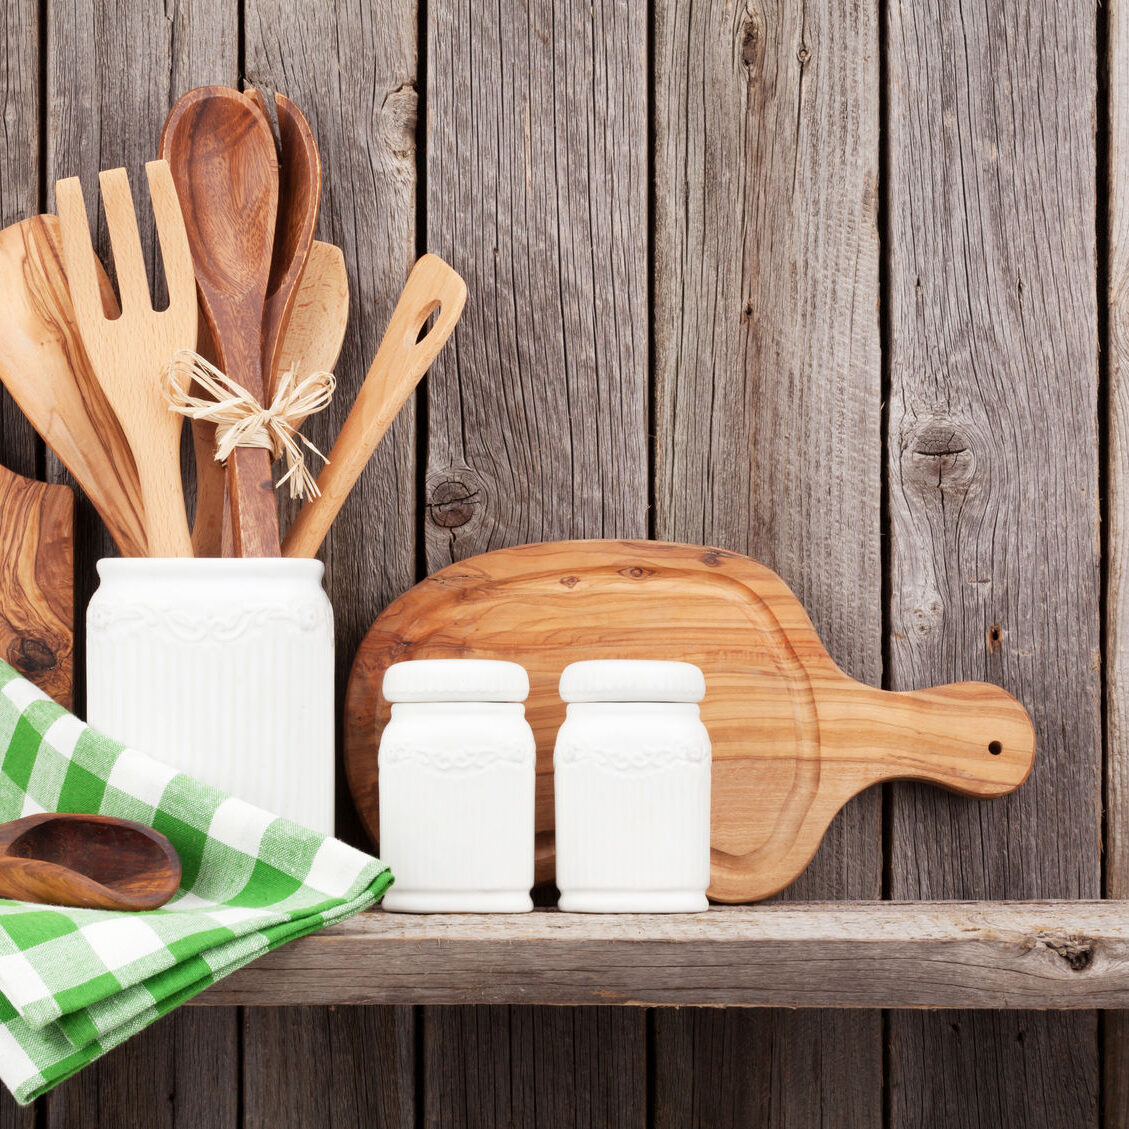 48499900 - kitchen cooking utensils on shelf against rustic wooden wall